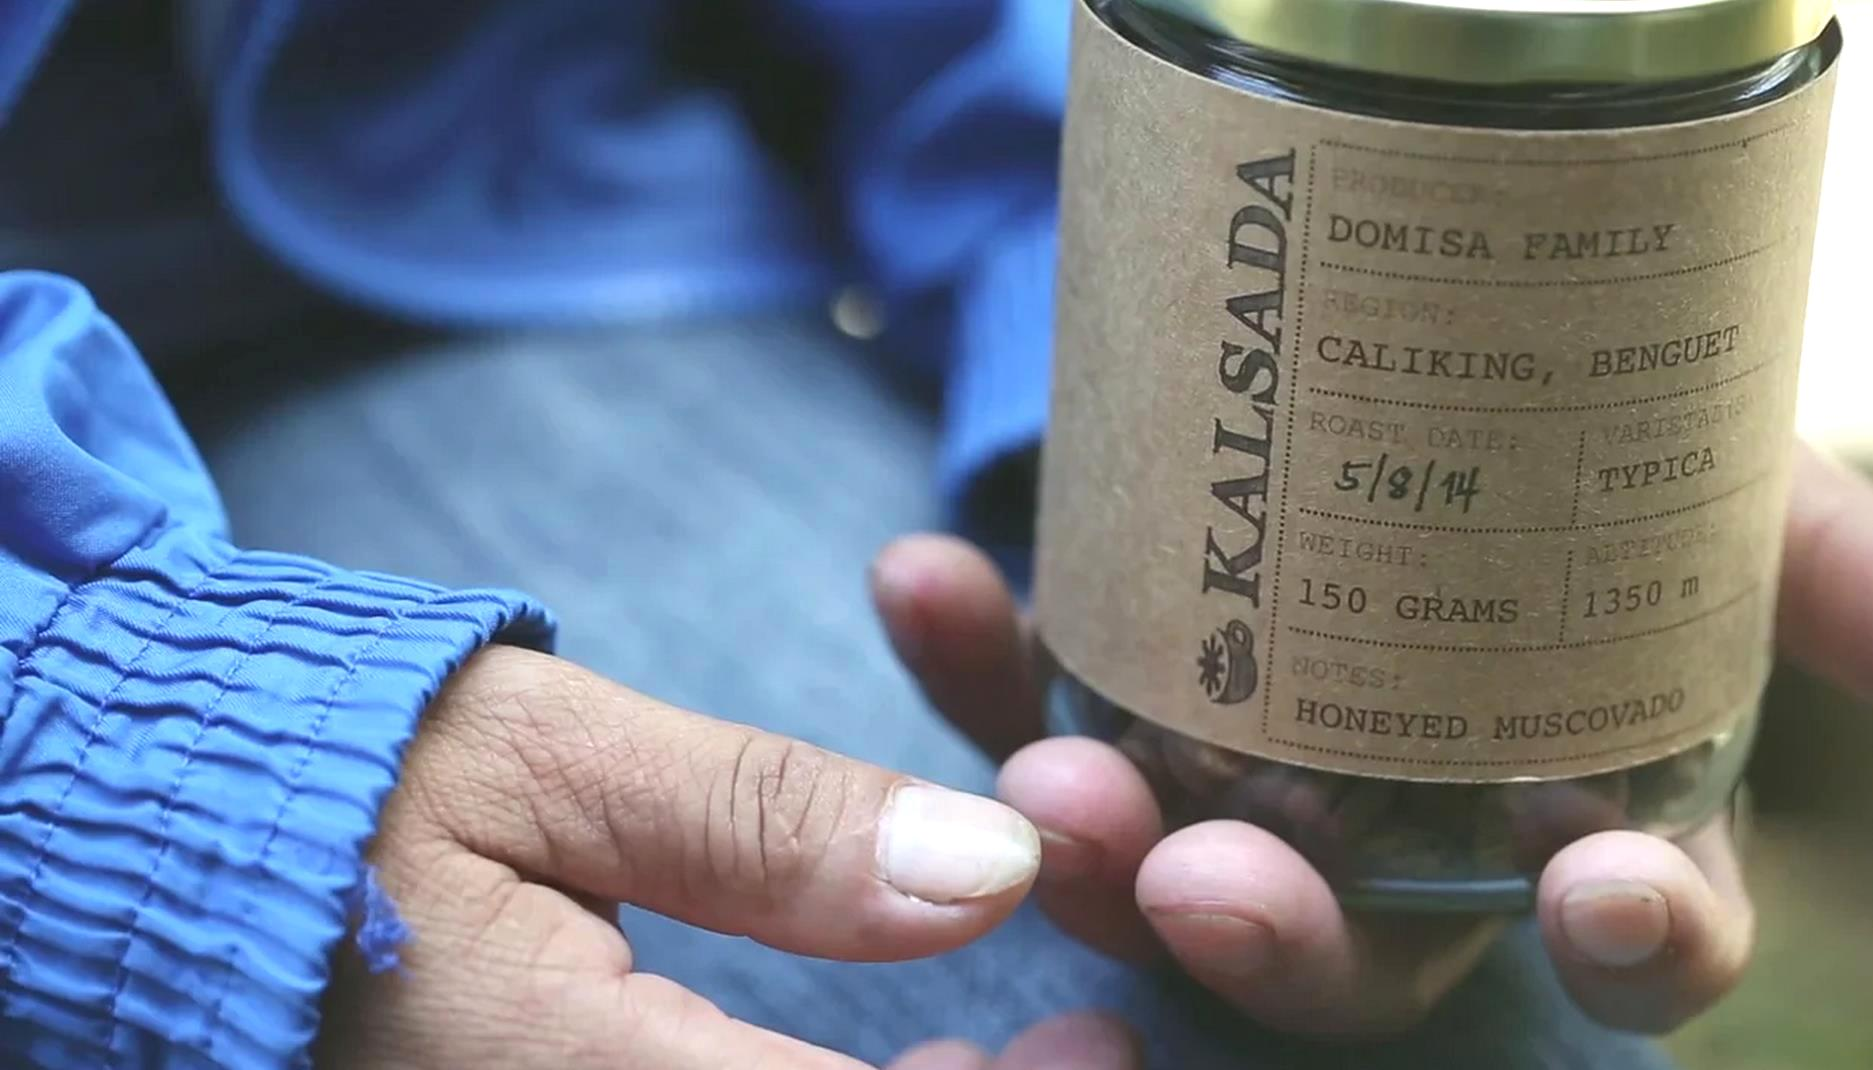 A farmer holds a jar of roasted Kalsada coffee beans that came from her farm.